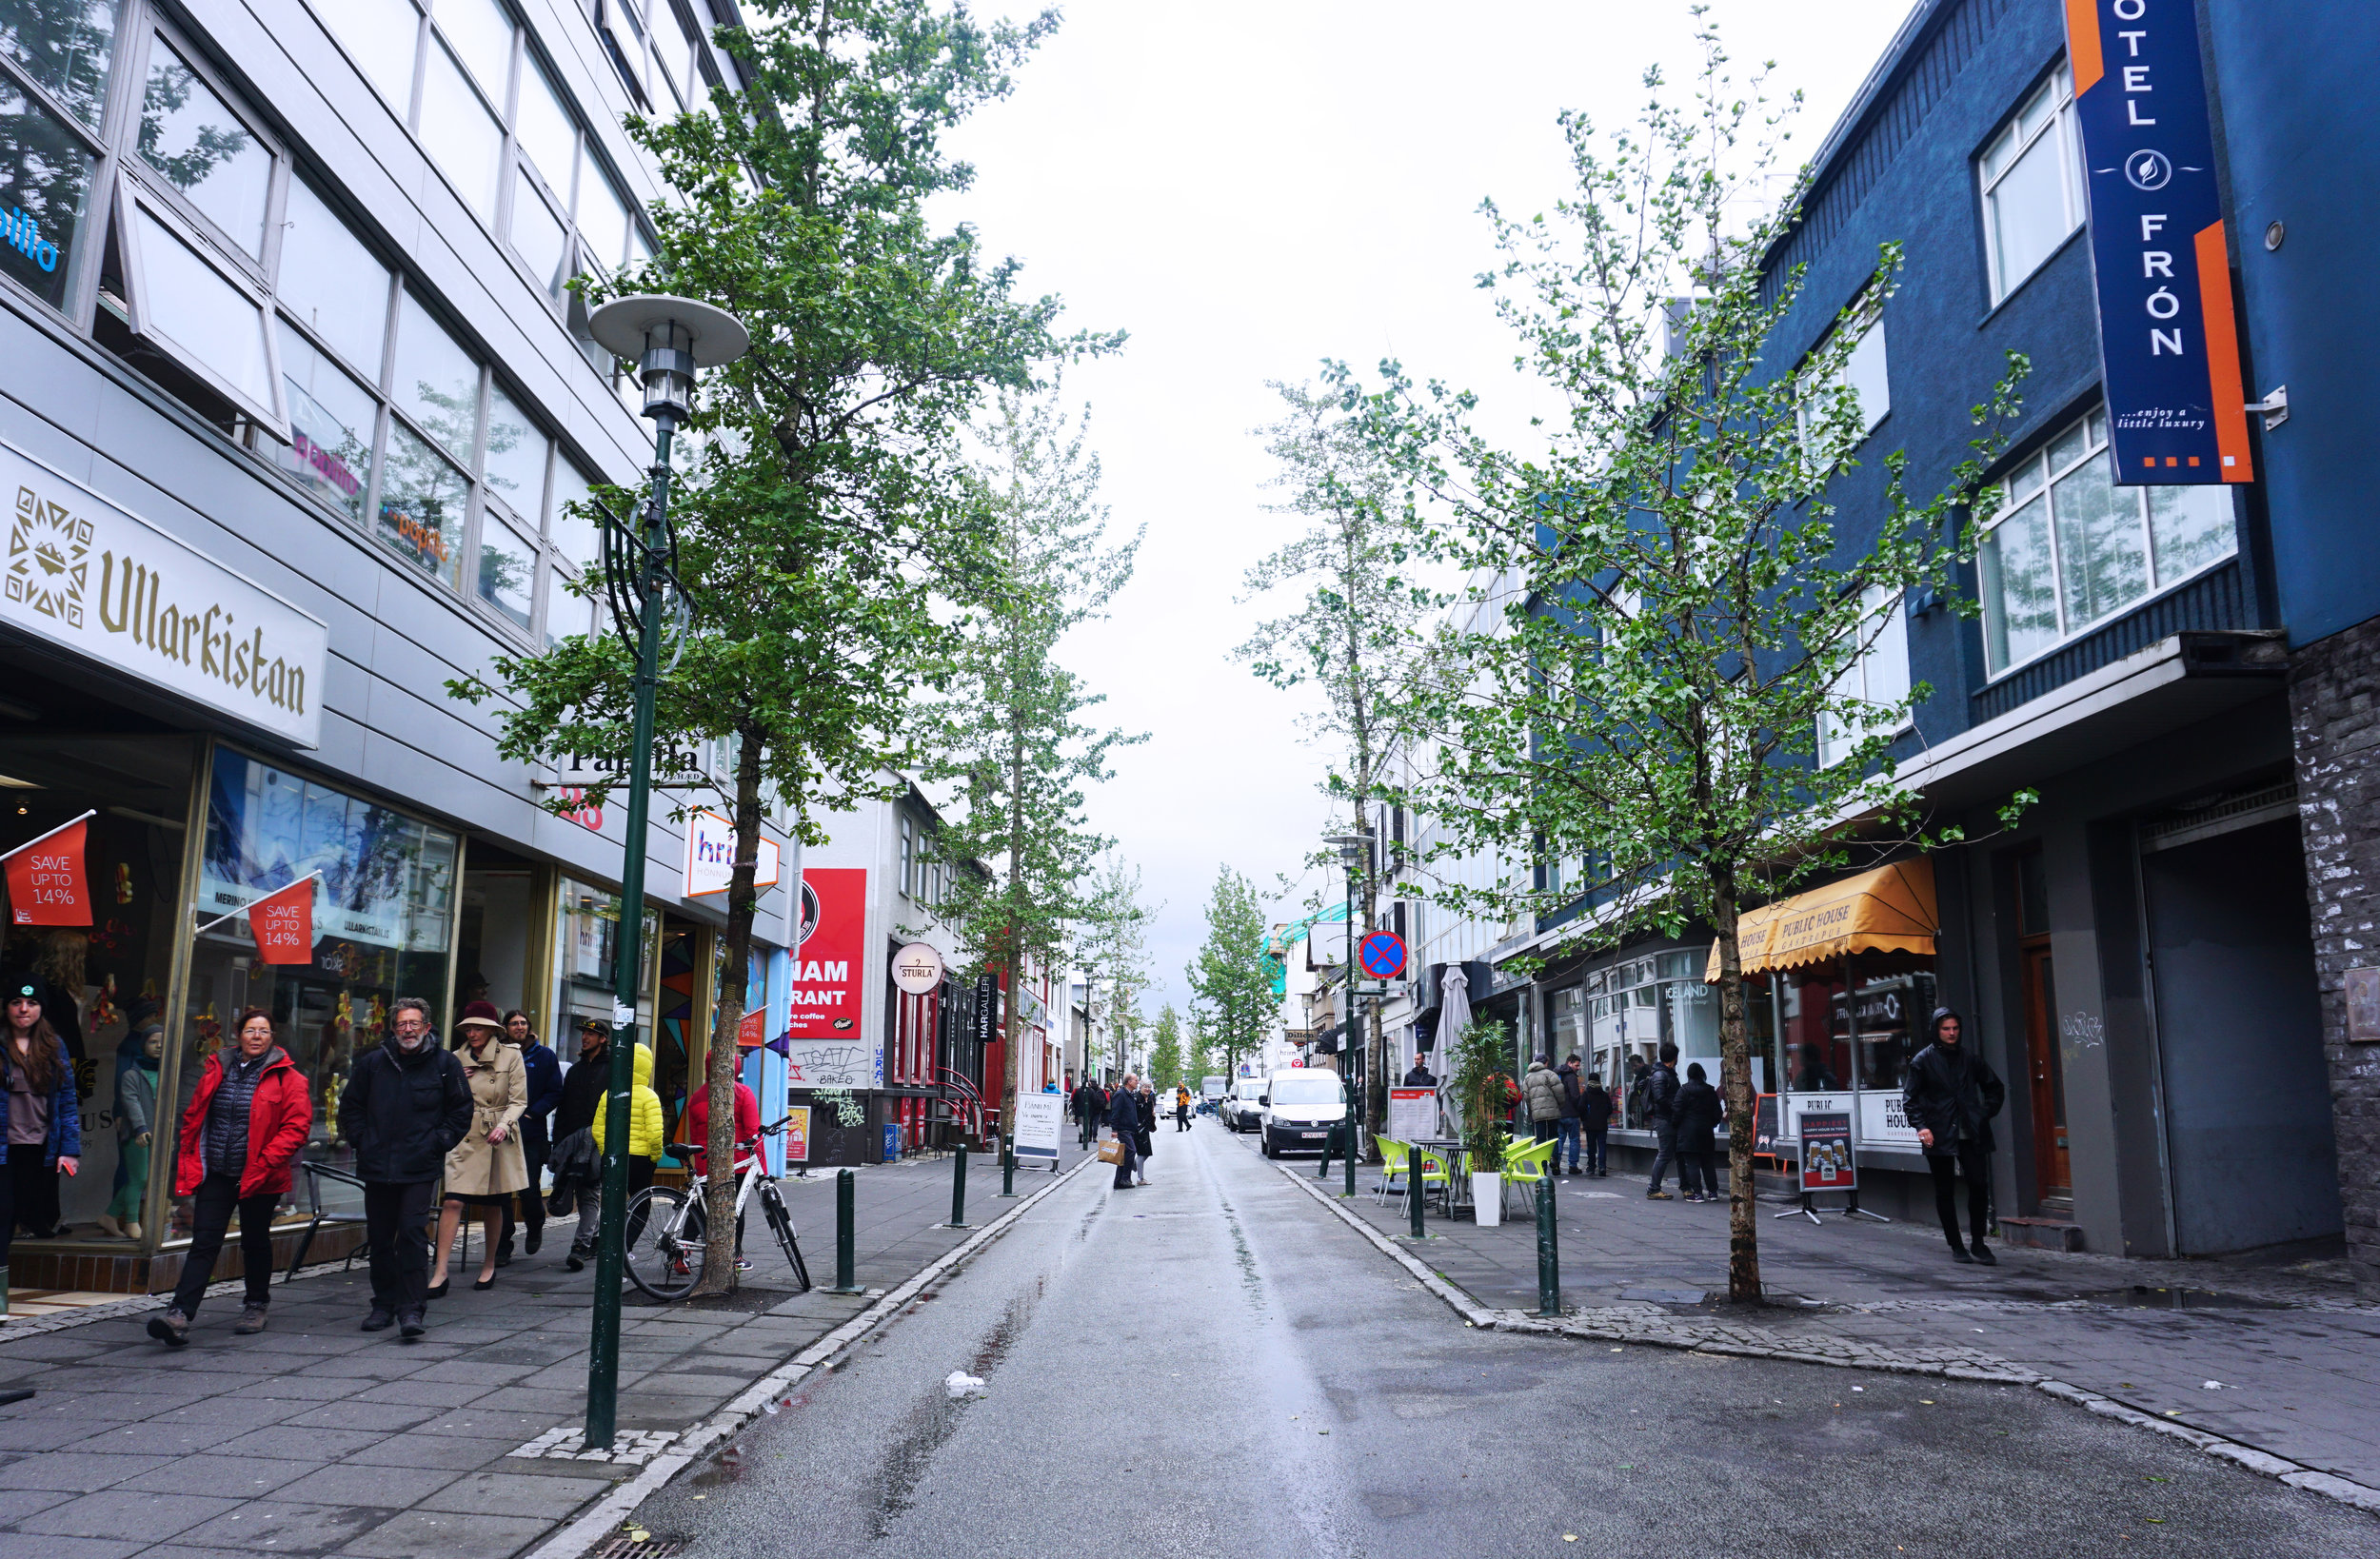 Laugavegur - is one of Reykjavik's main shopping streets where you can find everything from cute boutiques to kitschy tourist shops, and fine dining establishments to noodle shops (more on that later).